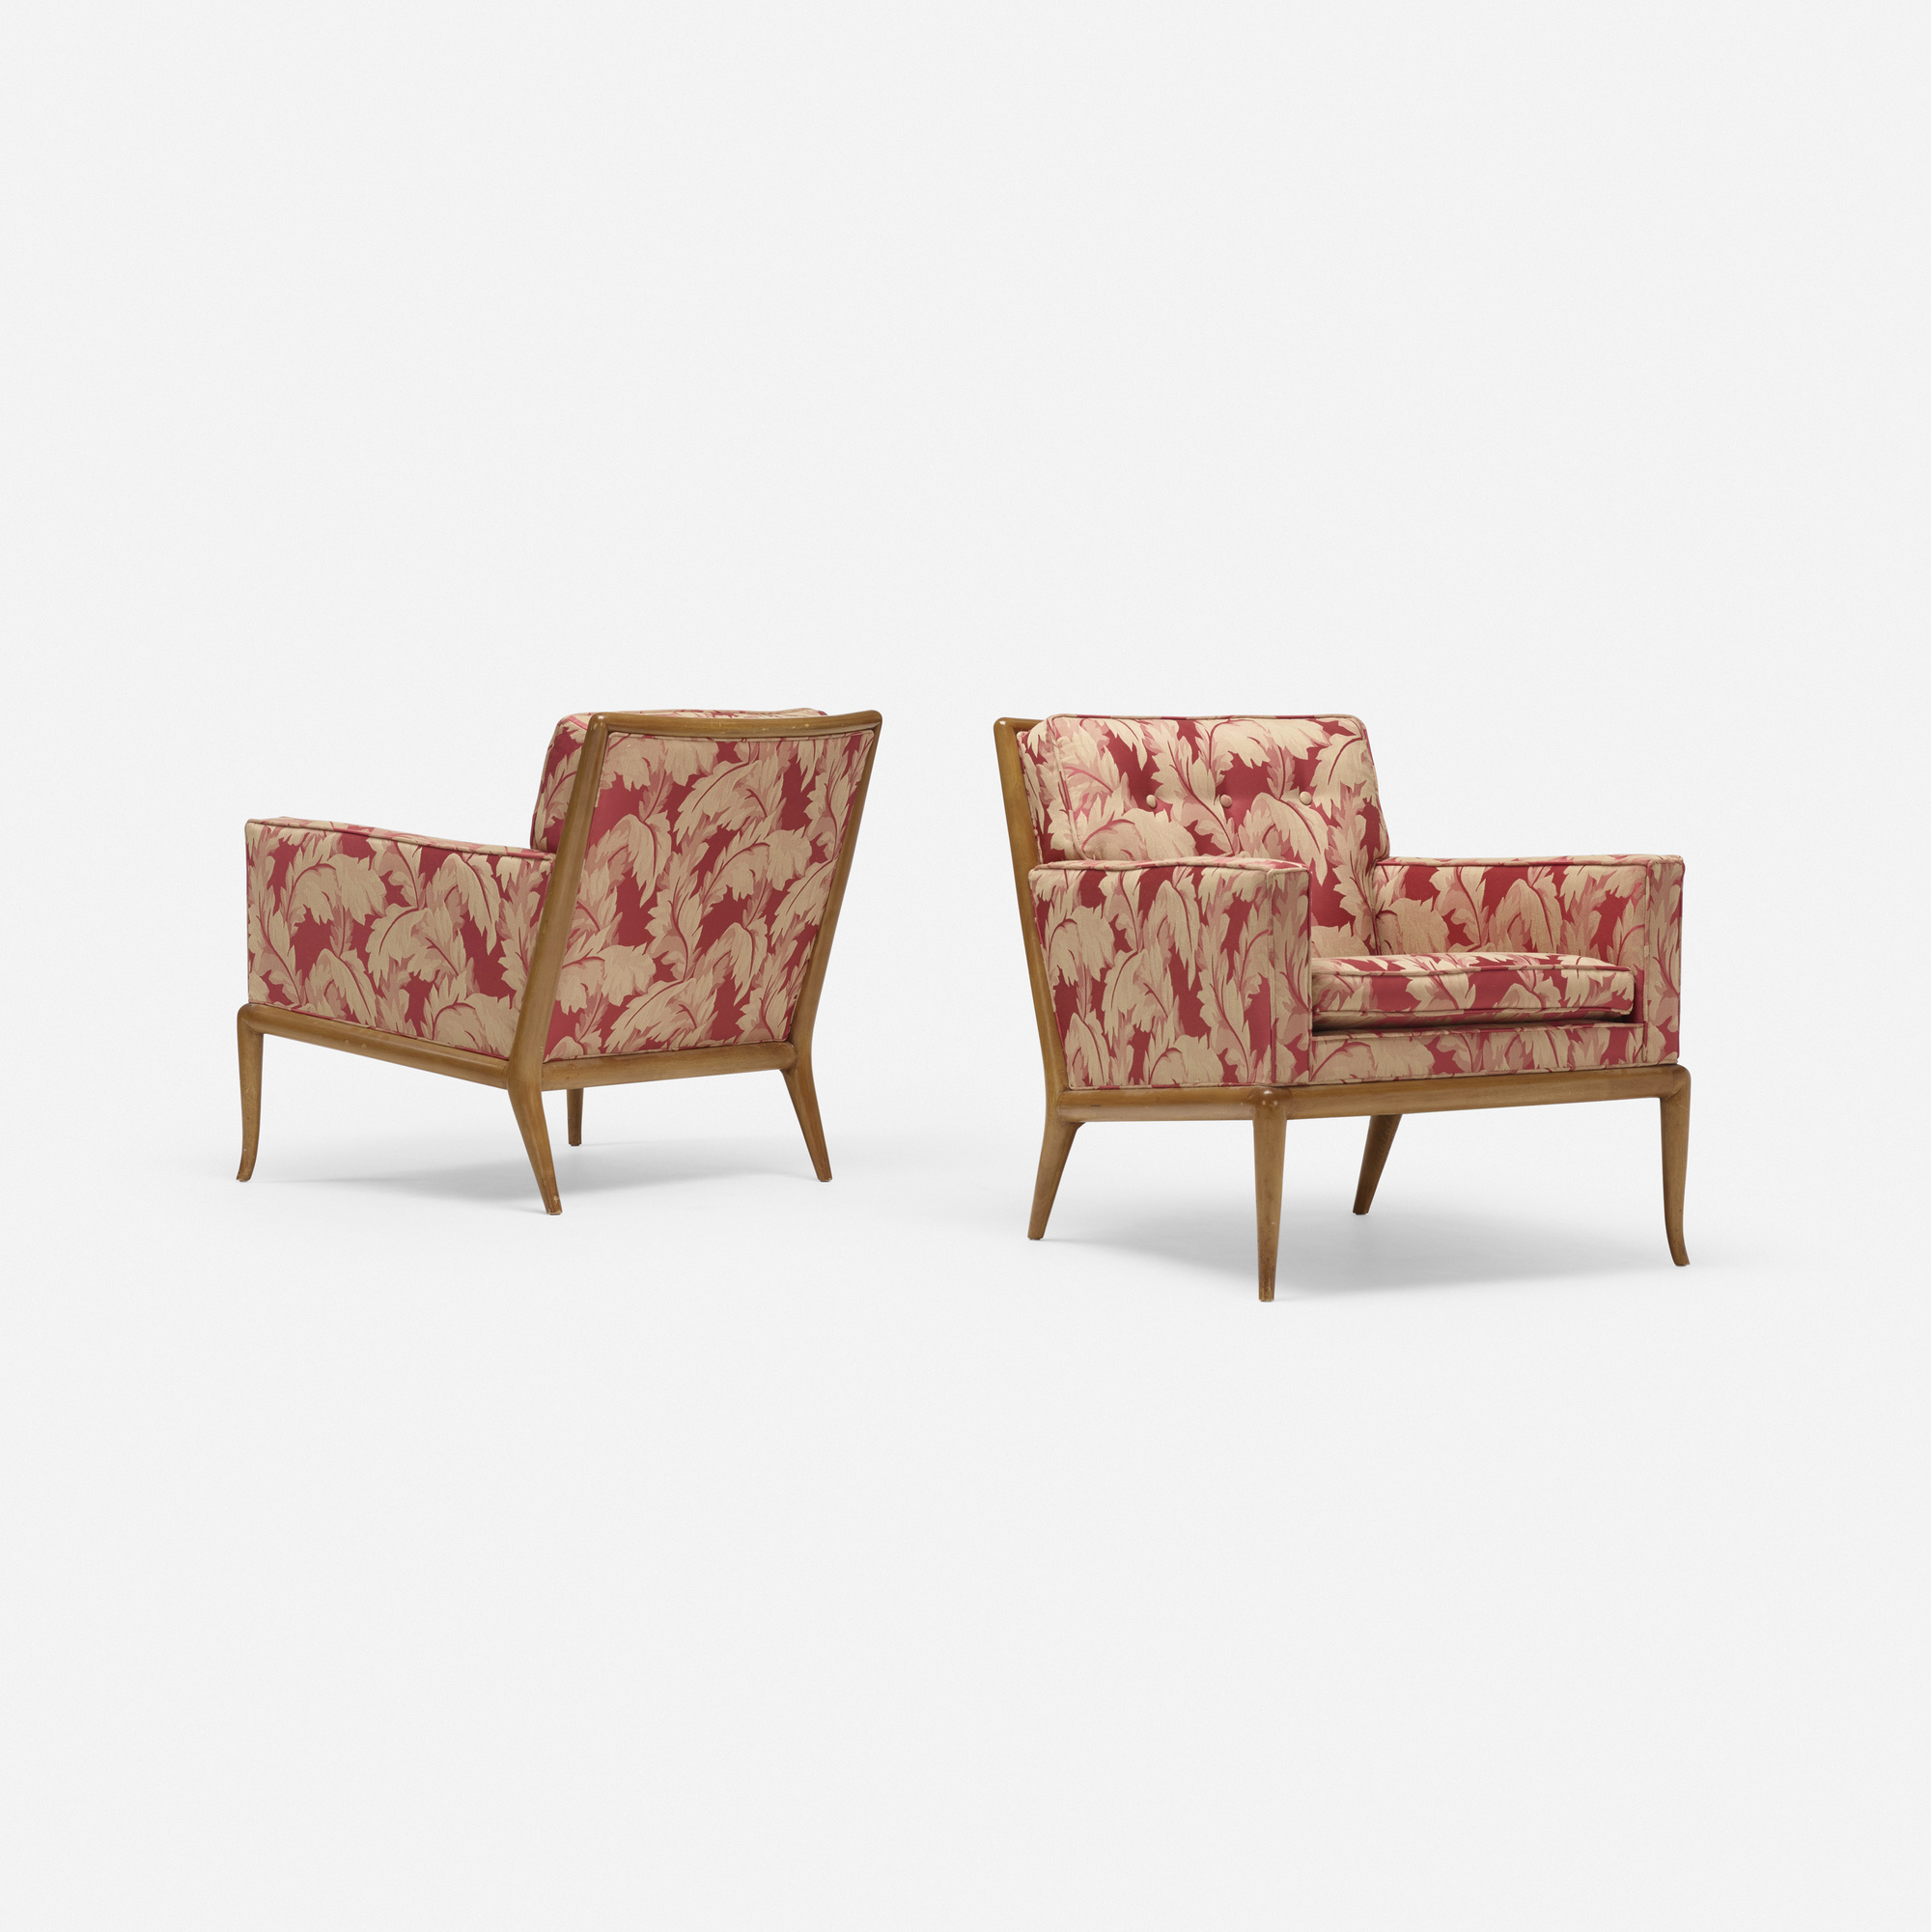 691: T.H. Robsjohn-Gibbings / lounge chairs model WMP, pair (1 of 3)